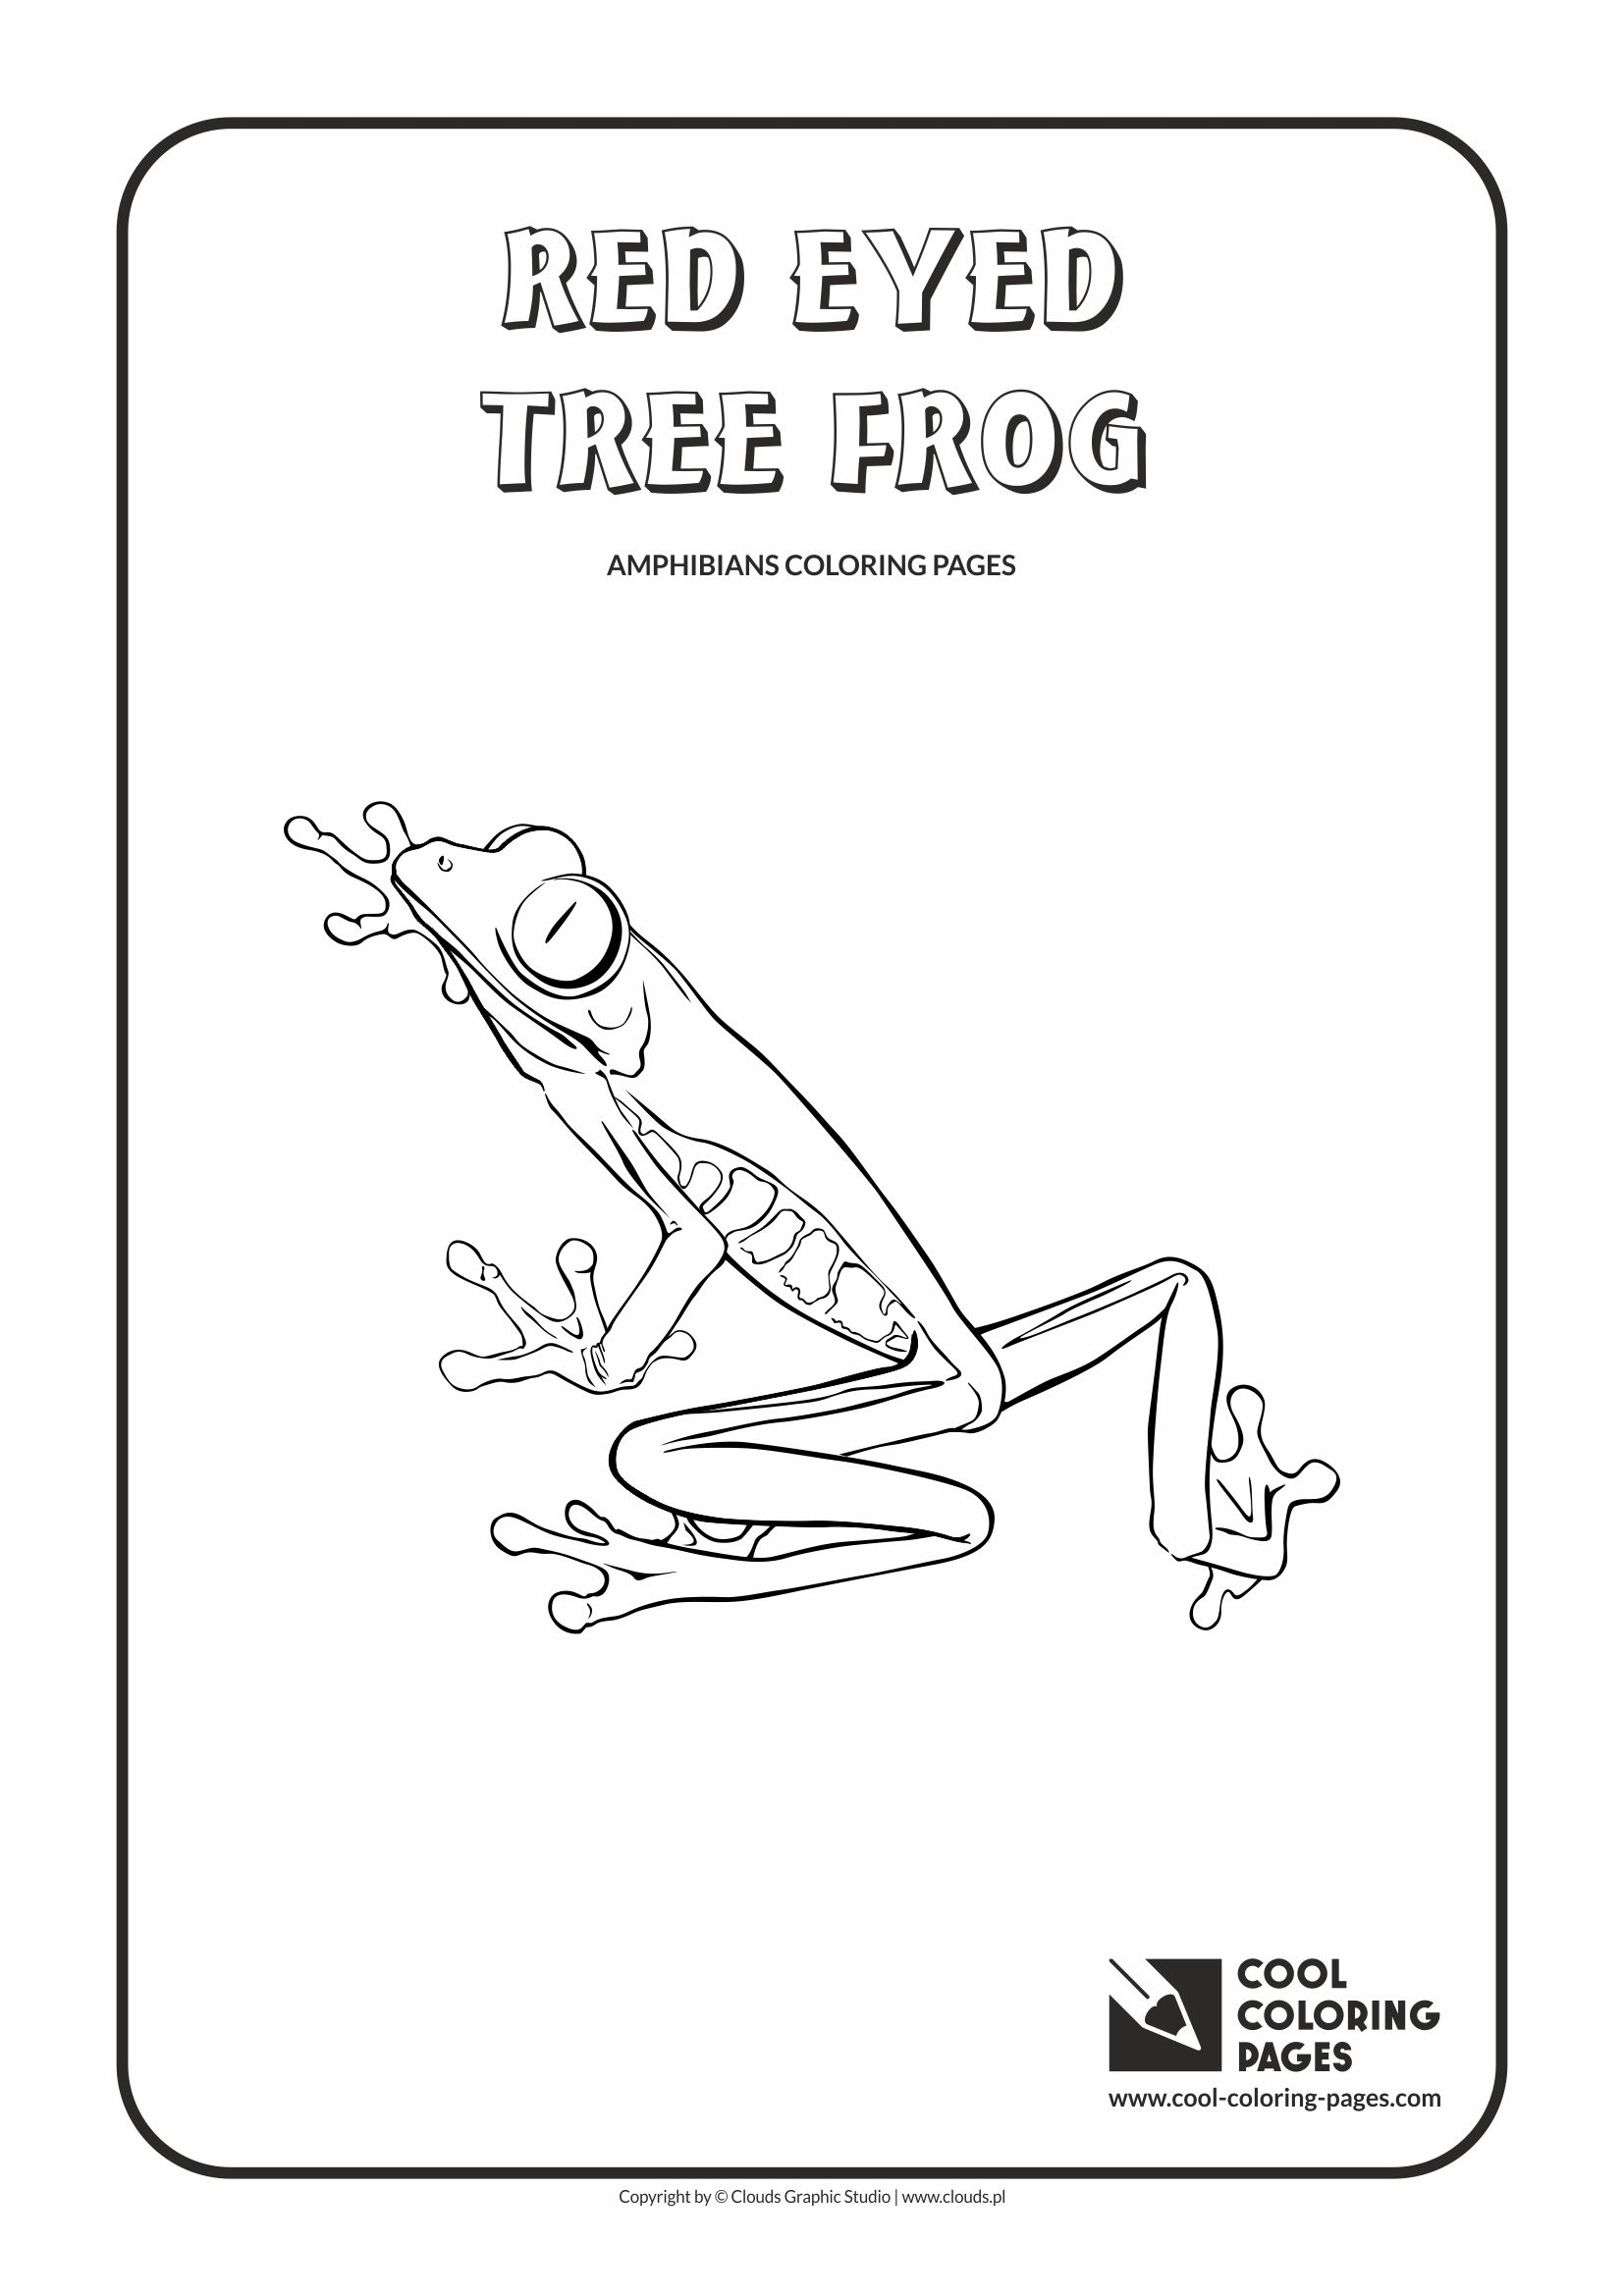 Free coloring pages red eyed tree frog - Cool Coloring Pages Animals Red Eyed Tree Frog Coloring Page With Red Eyed